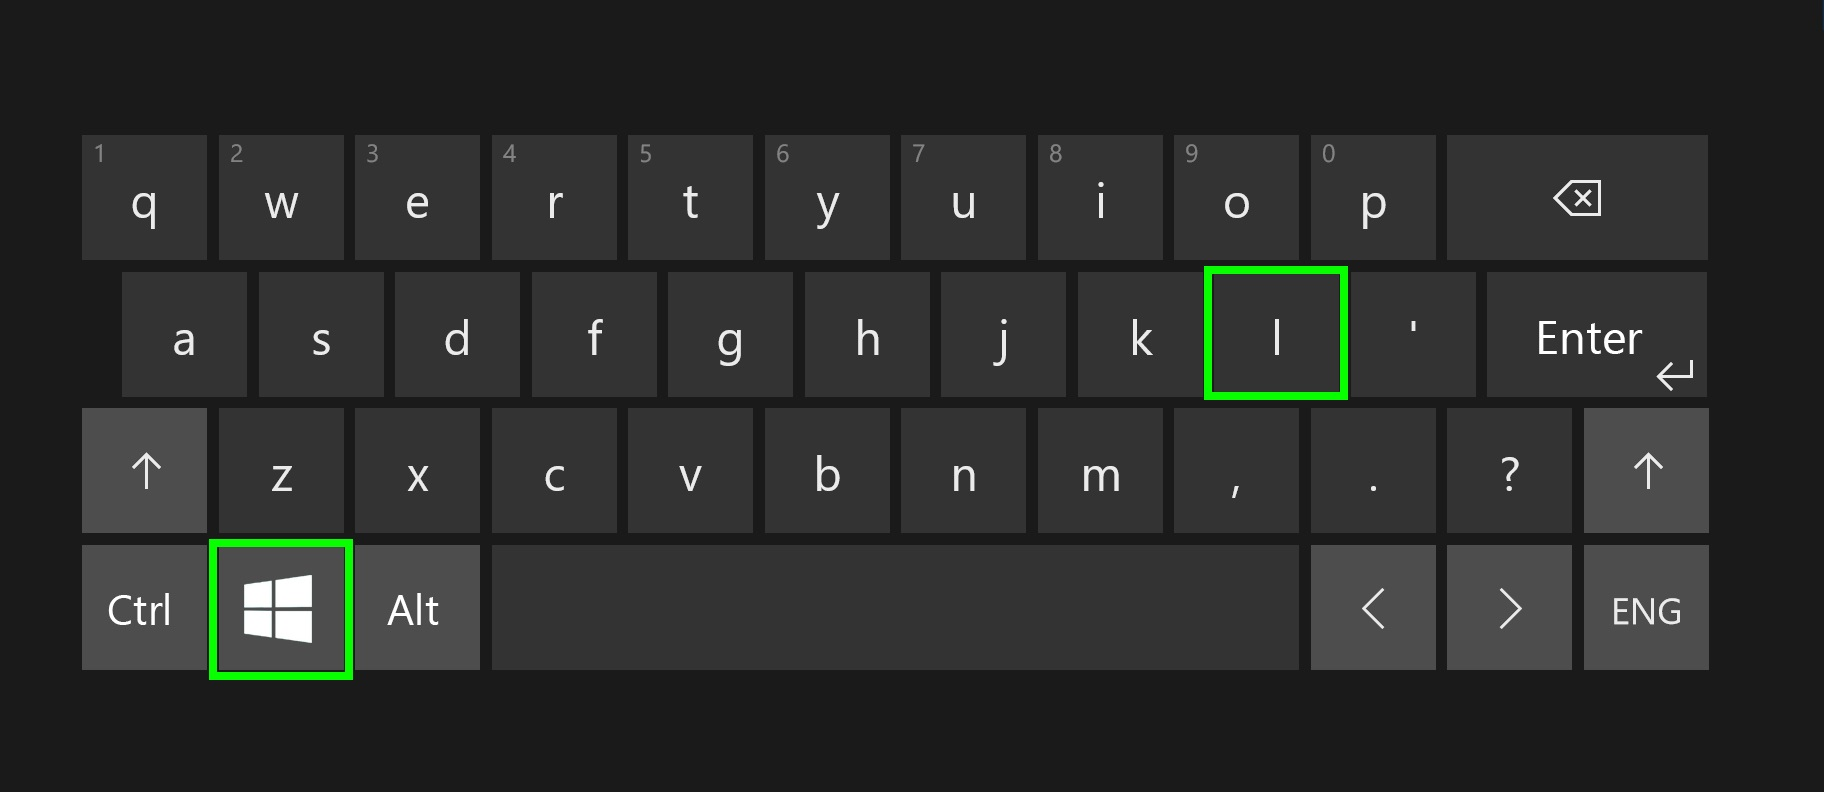 Digital keyboard with highlighted Windows key and L keys